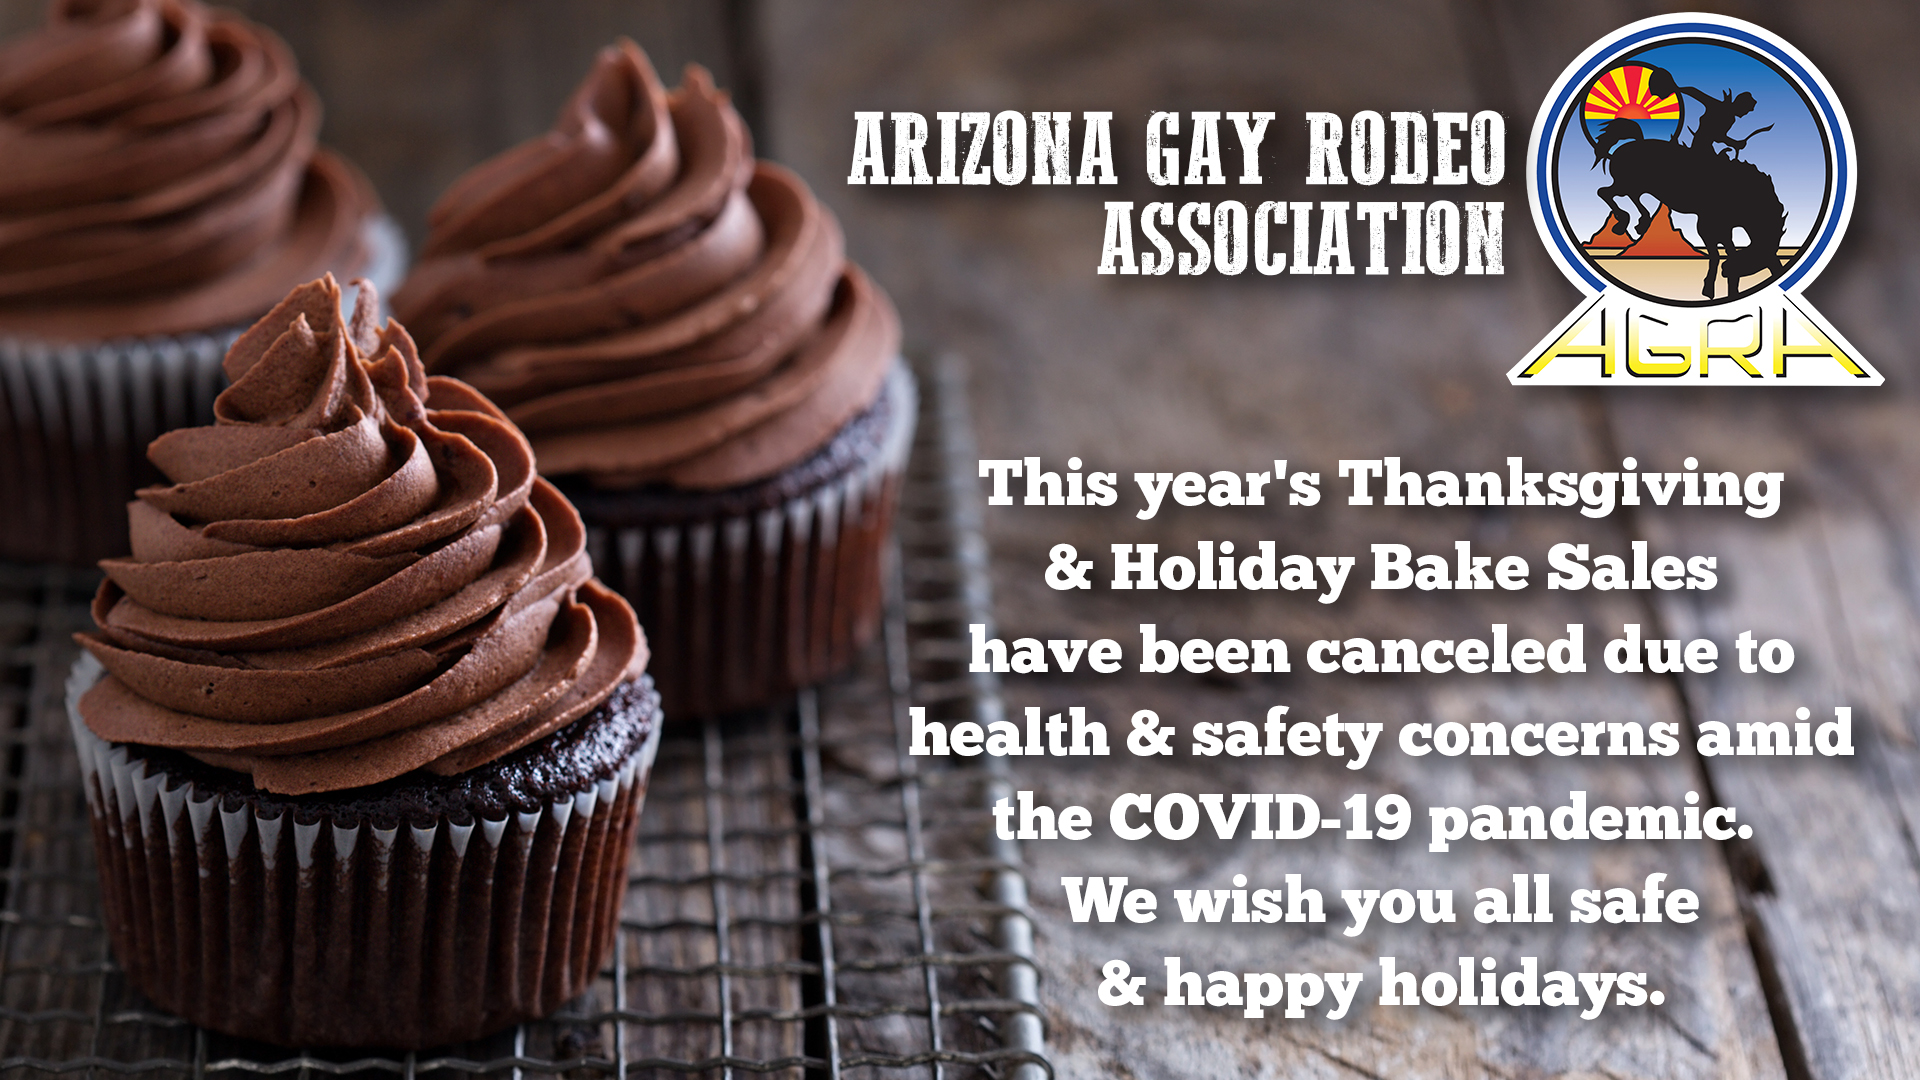 Announcement that AGRA has canceled their annual bake sales for 2020.